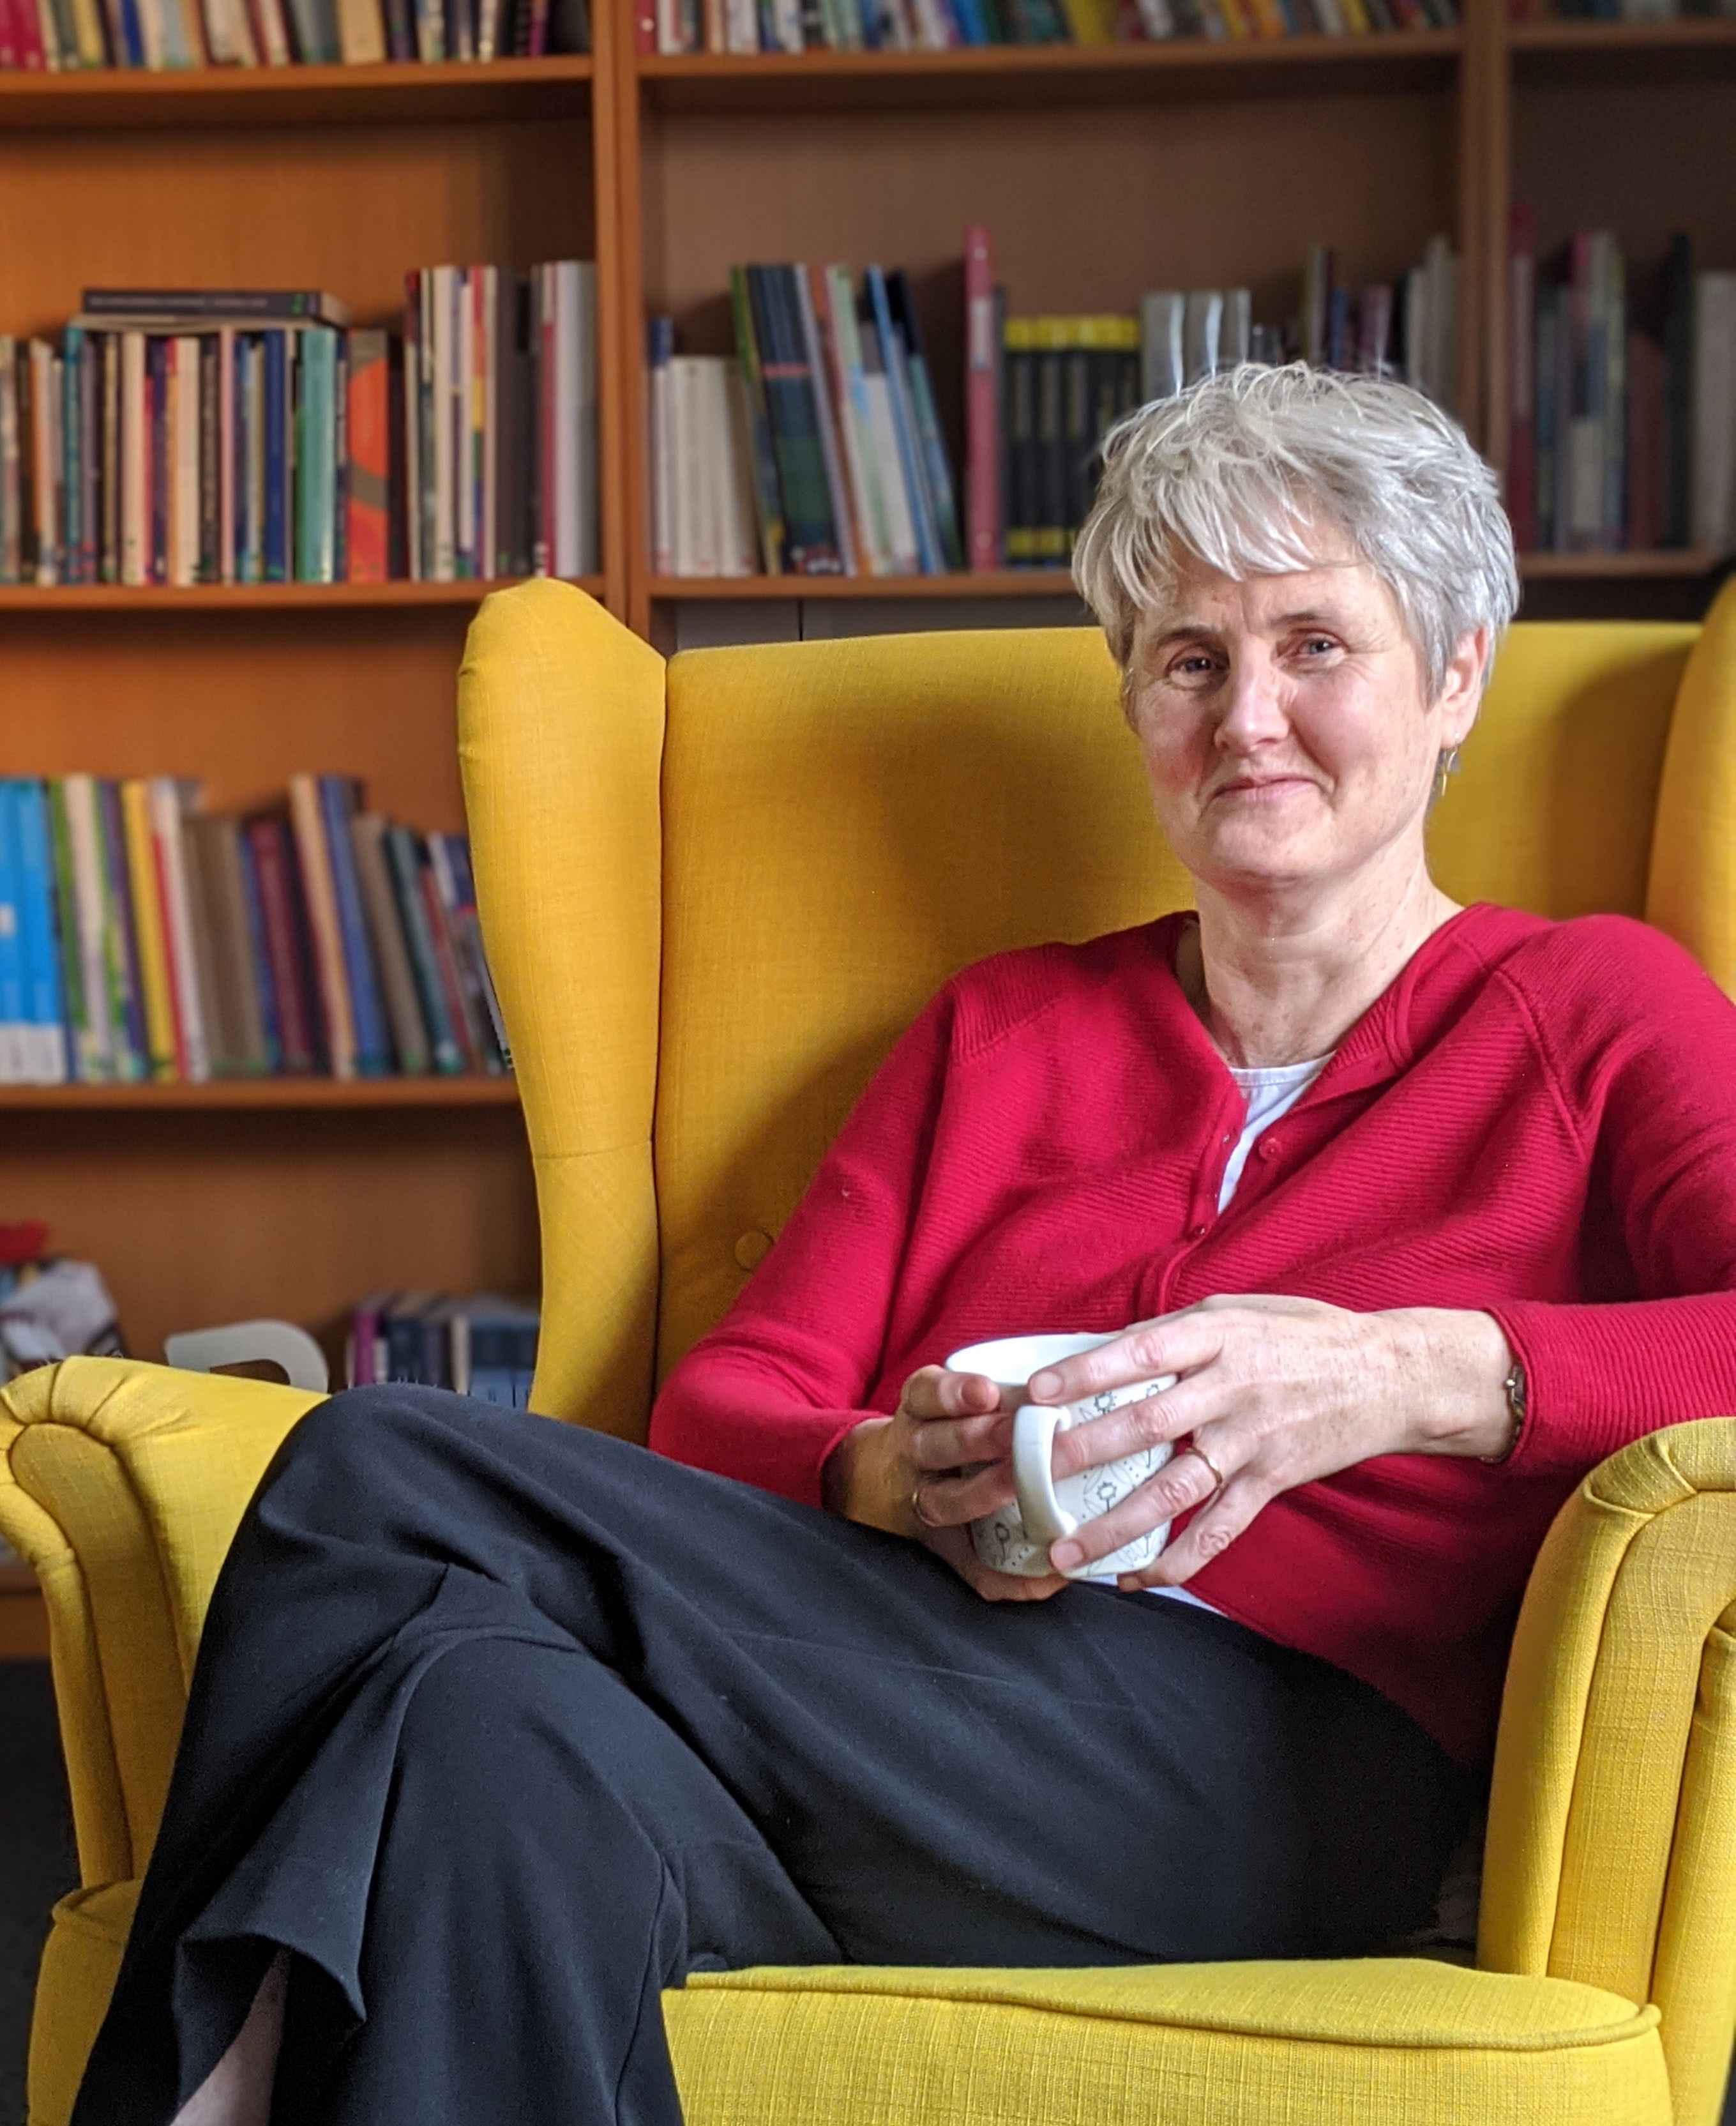 Patricia Penderville sitting on a yellow armchair.